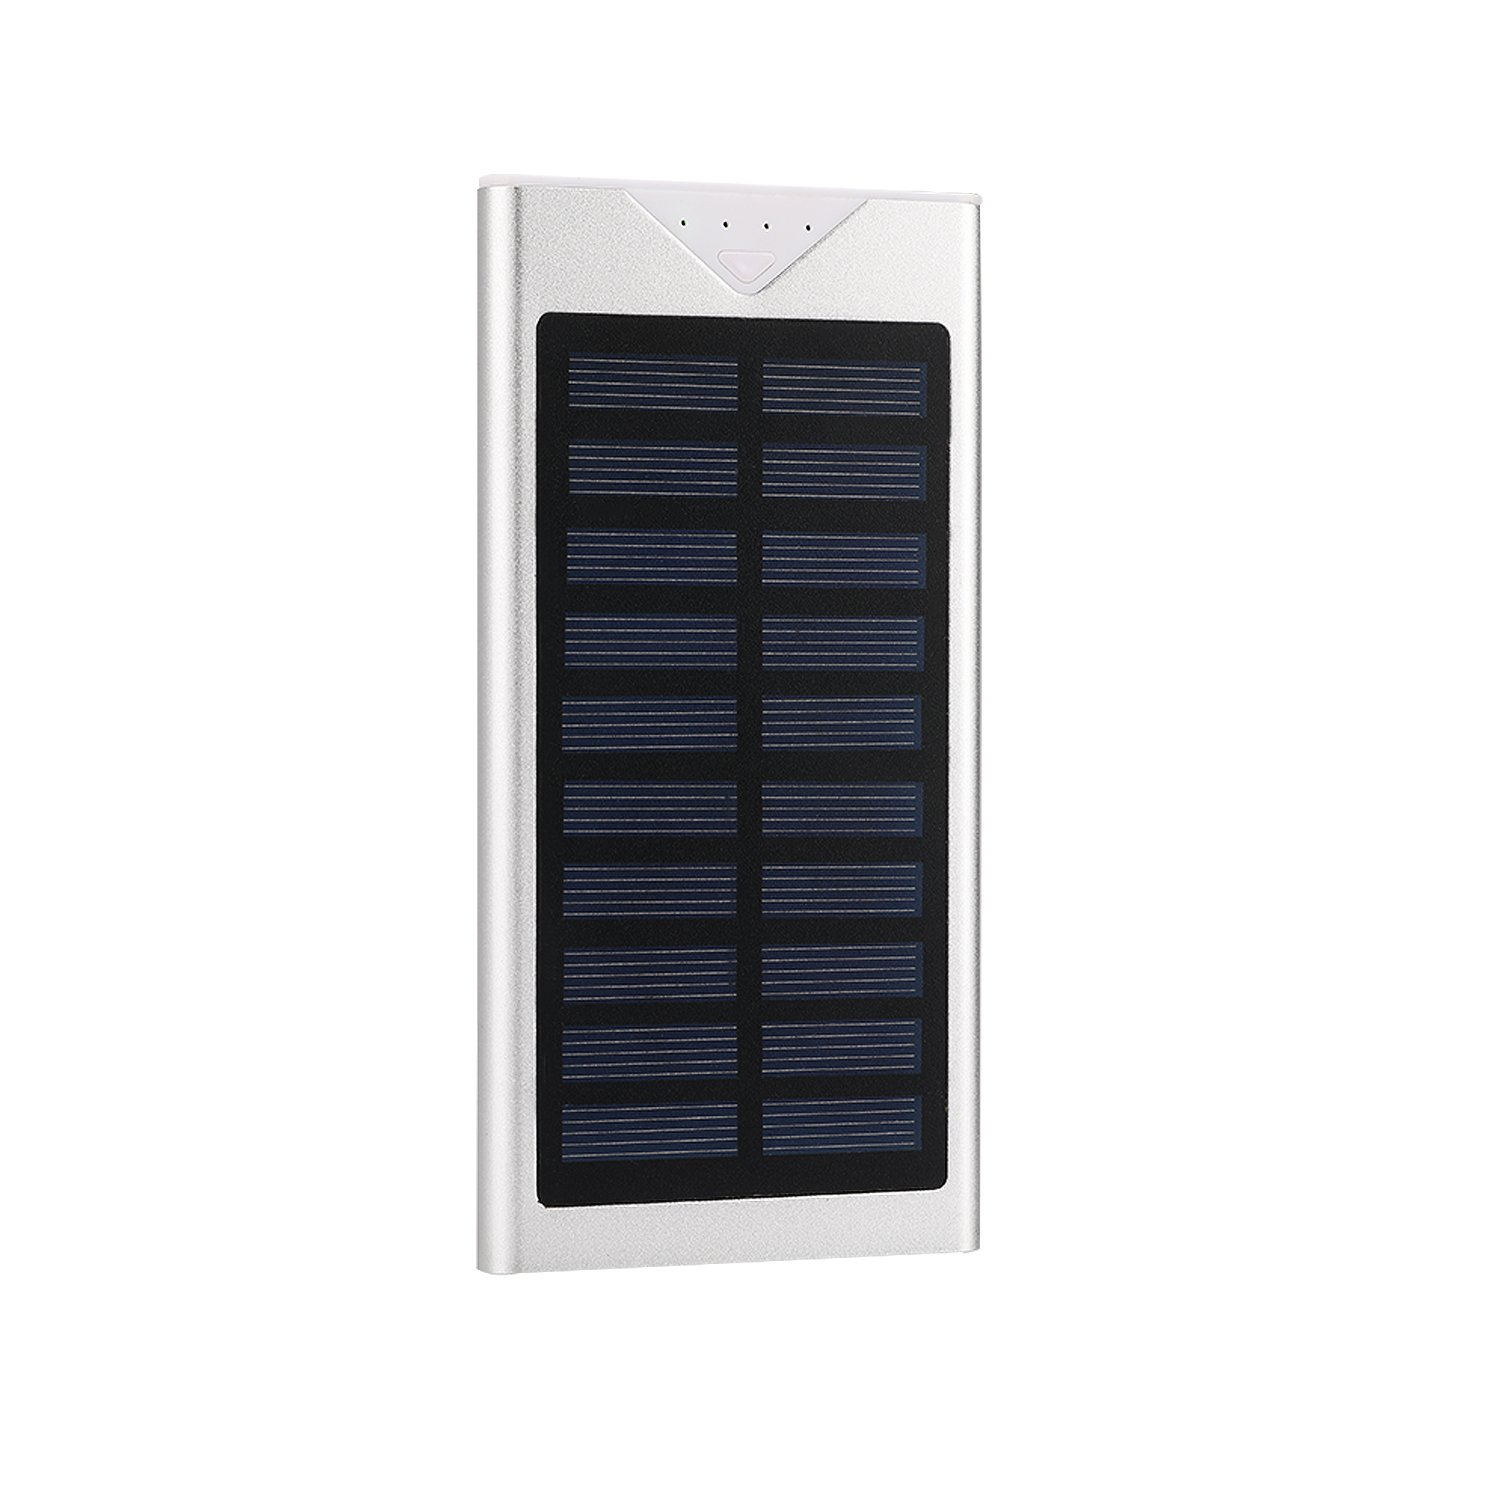 Solar Charger,Electric Camel 10800mAh Portable Solar Power Bank Dual USB LED Battery Charger for Outdoor iPhone,Samsung,Android phones,GoPro Camera,GPS and More (Silver)